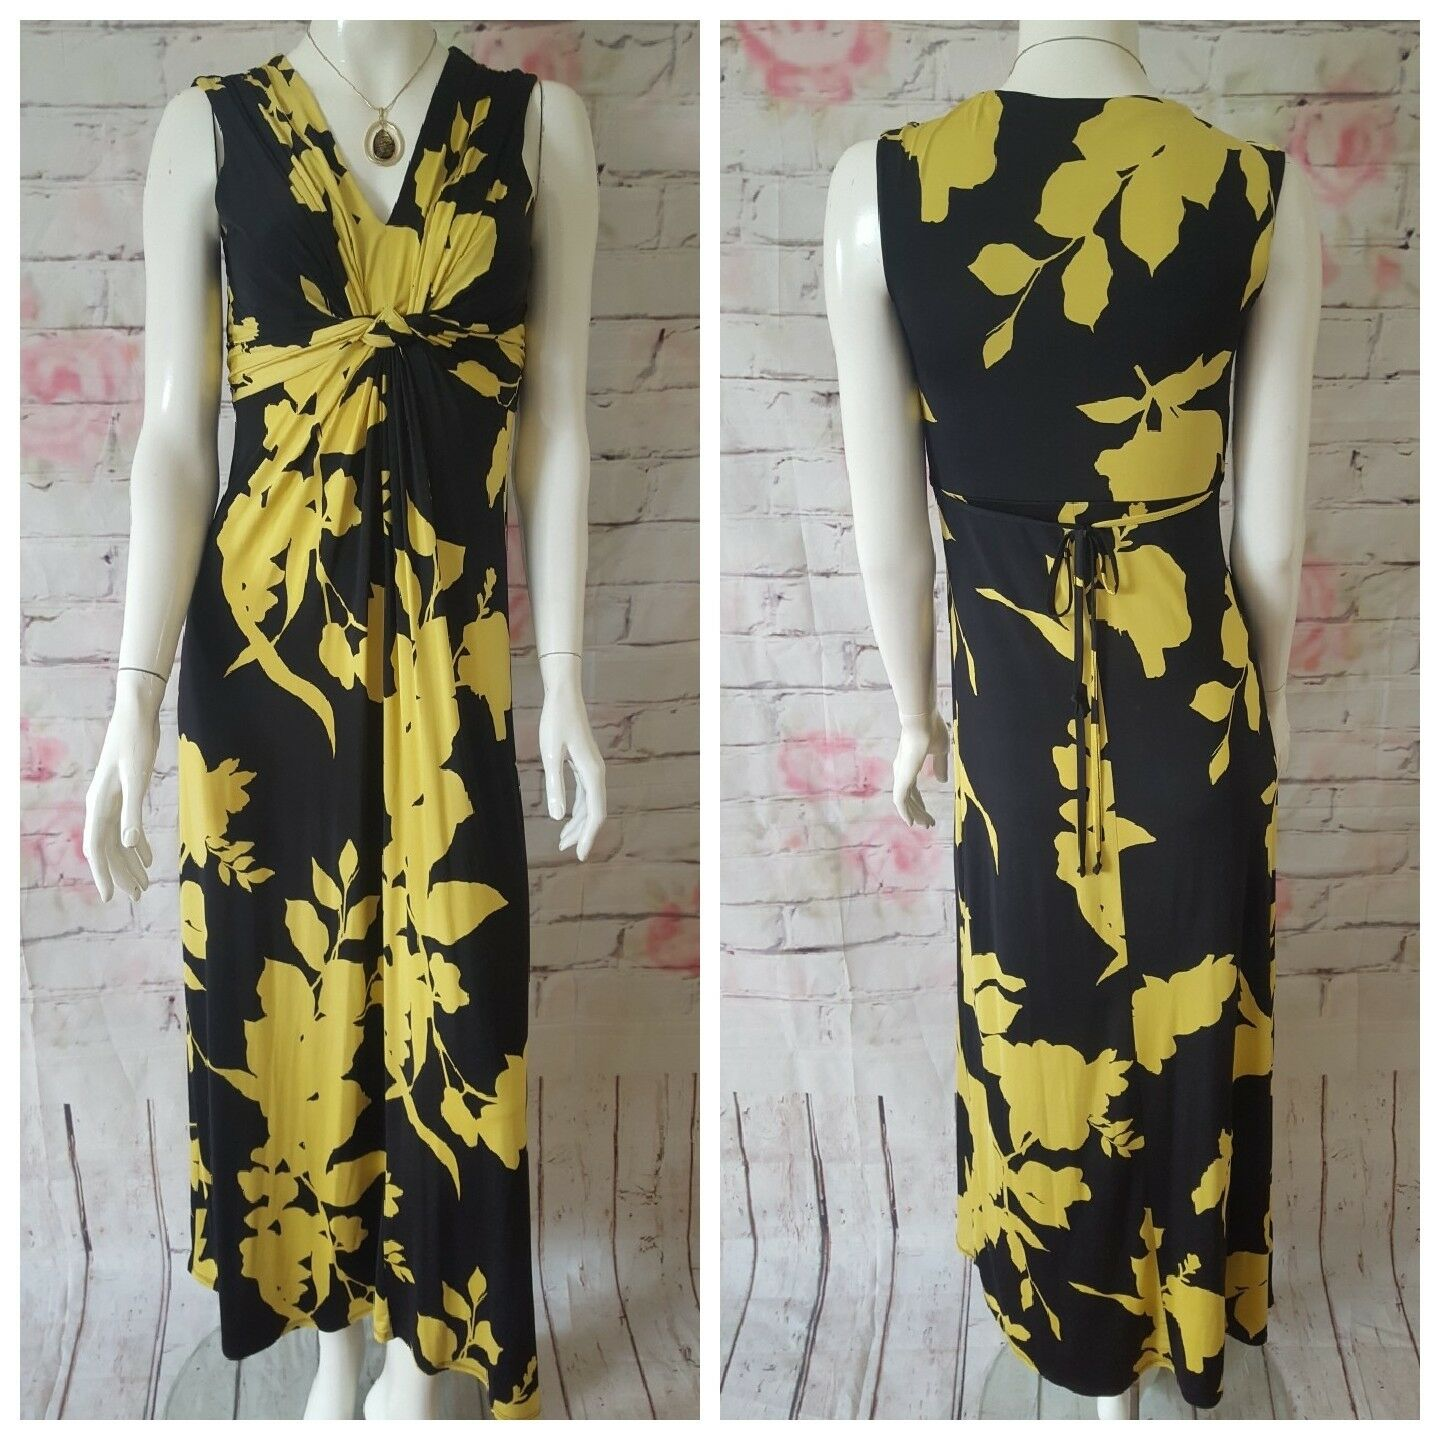 DEBENHAMS,UK10,LADIES BEAUTIFUL SUMMER HOLIDAY LONG DRESS,IN GREAT CONDITION